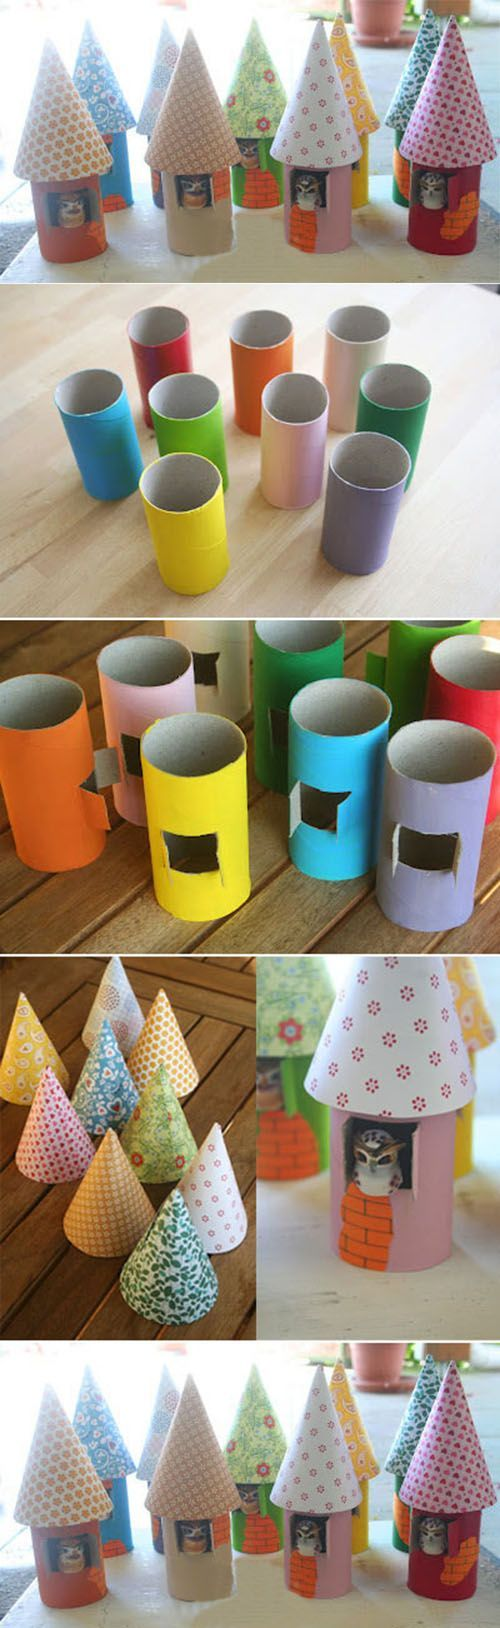 Cute Paper Craft | DIY & Crafts Tutorials: